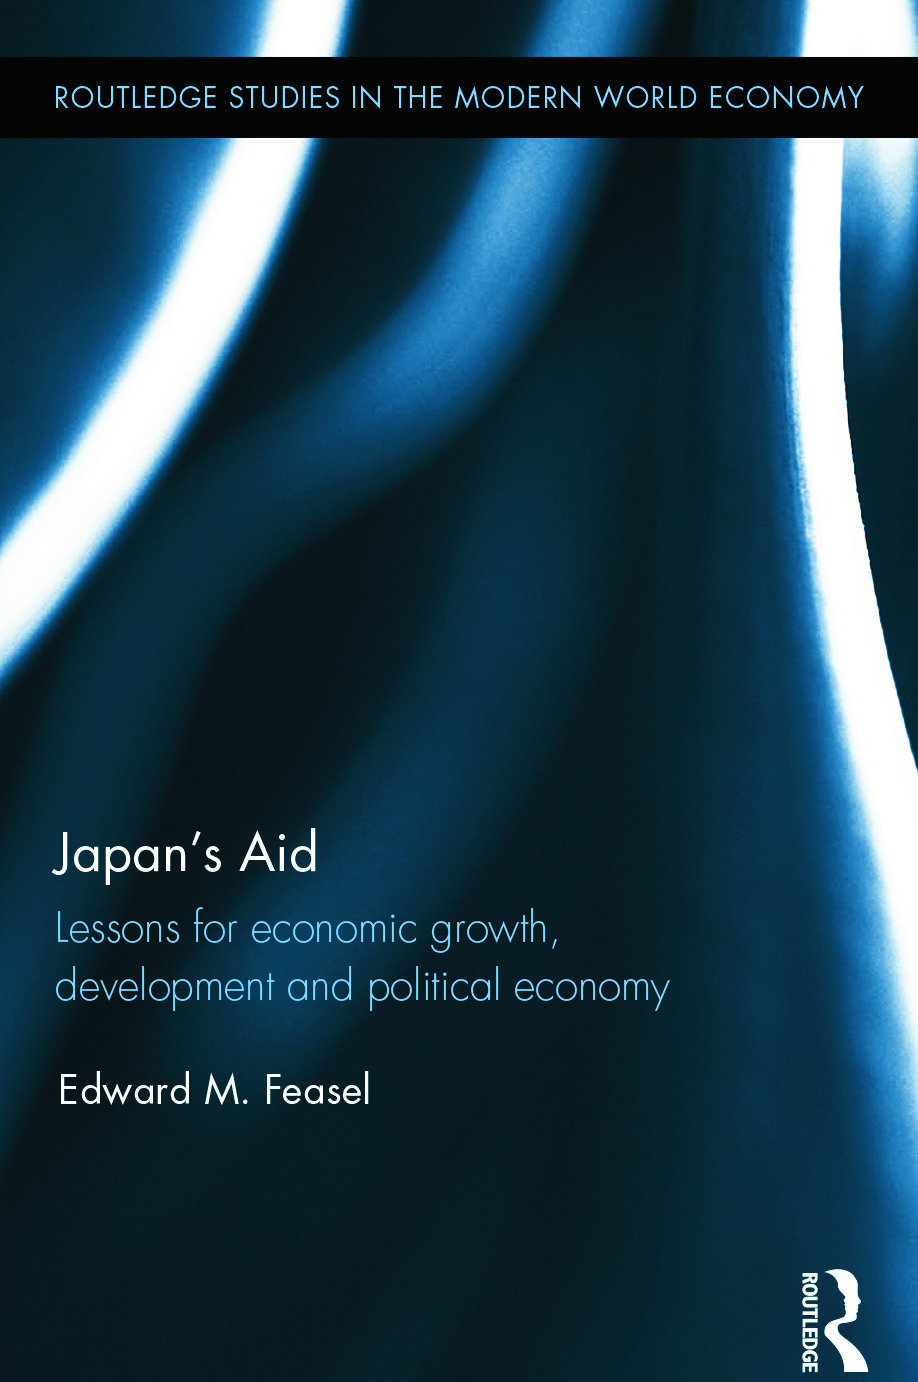 Japan's Aid: Lessons for economic growth, development and political economy book cover